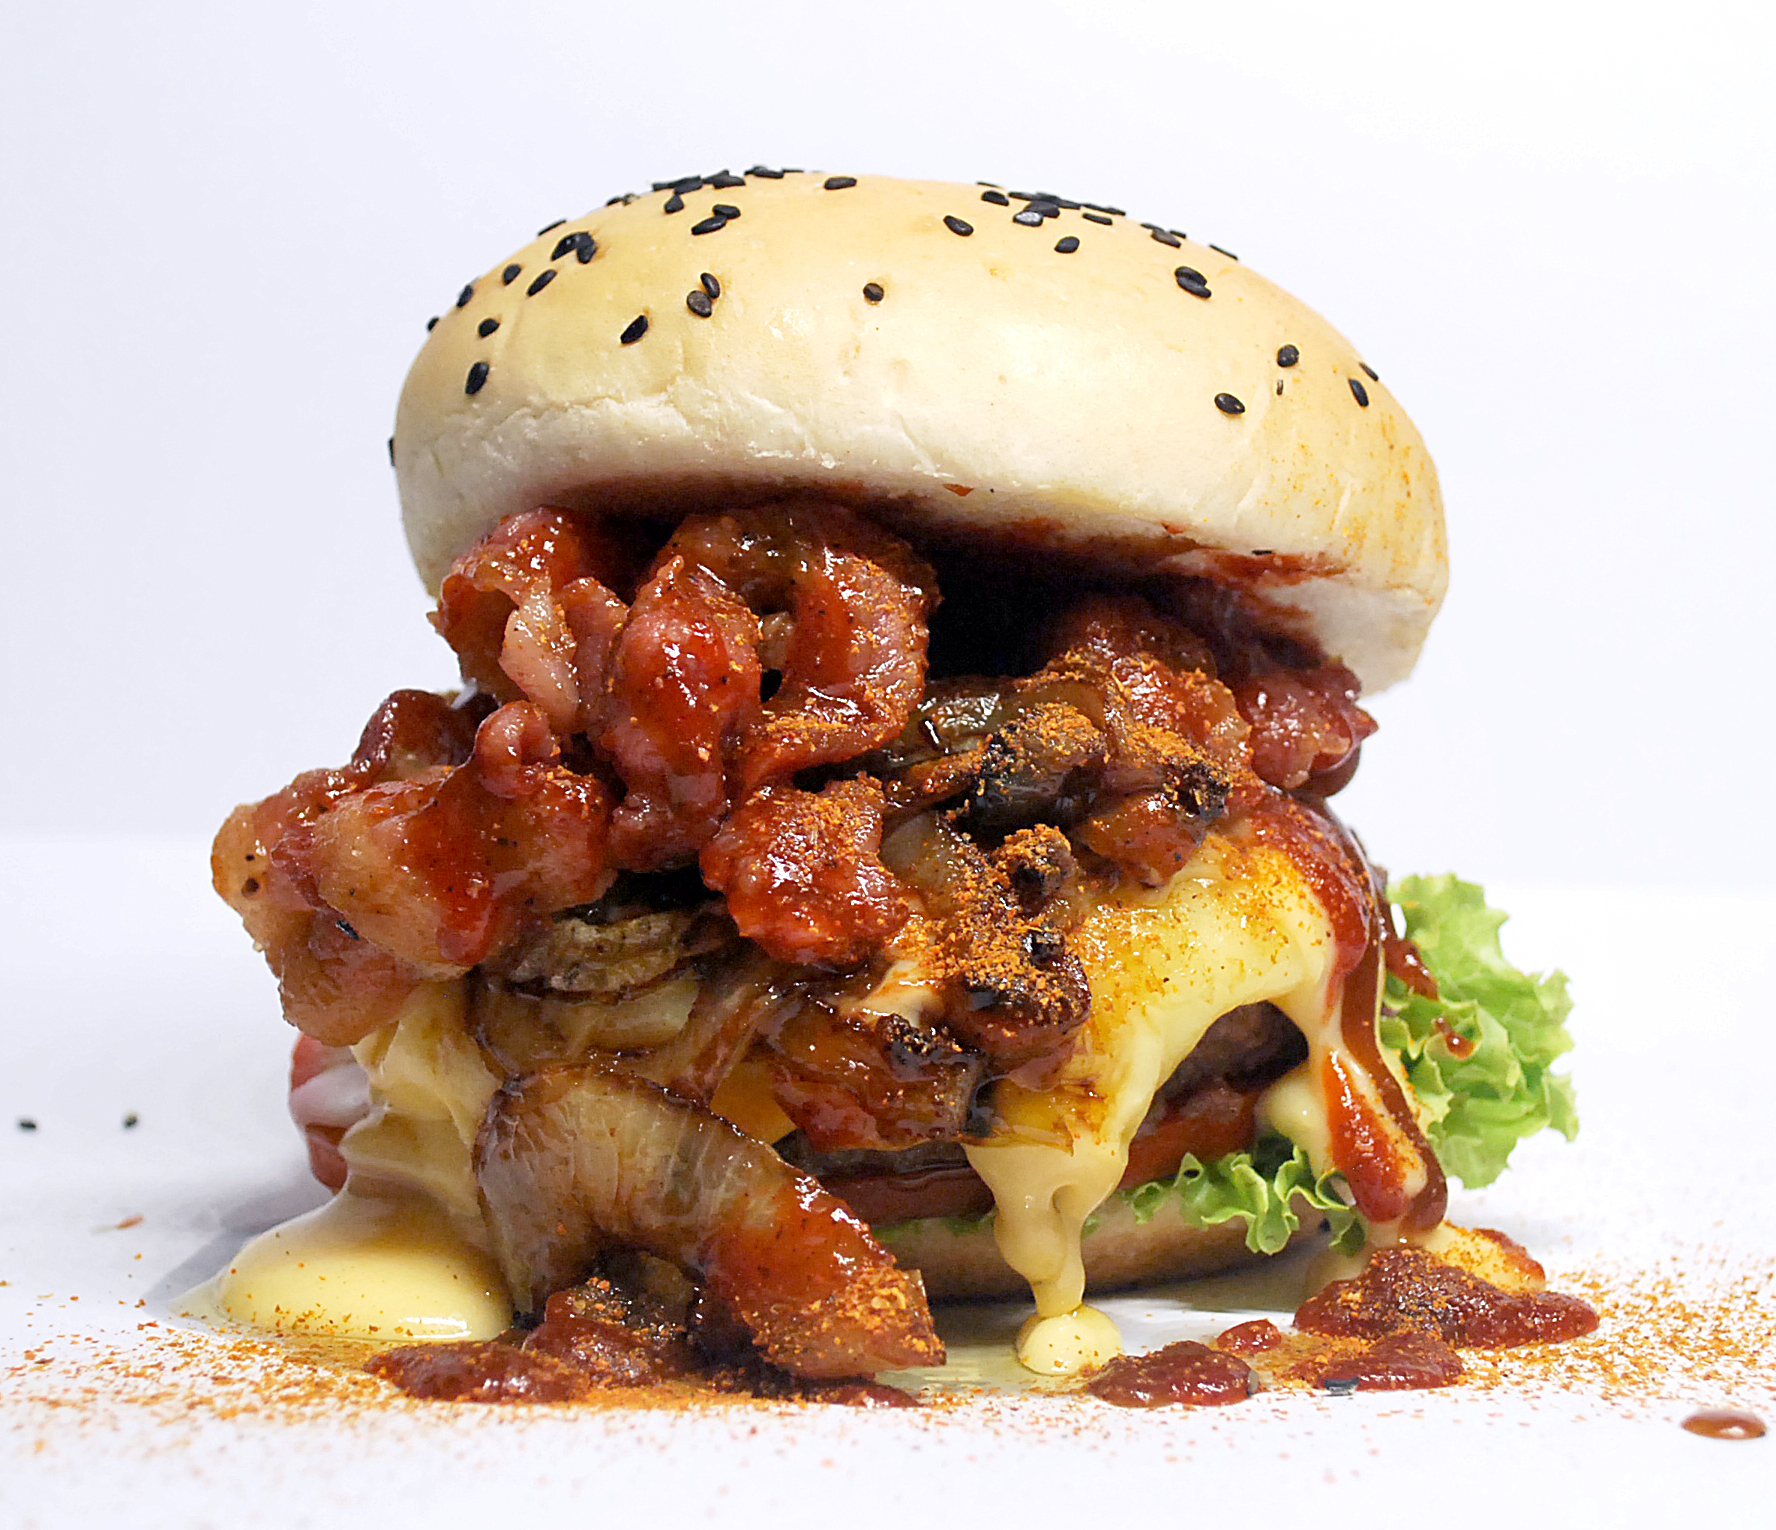 BB Spicy Barbecue Bacon Burger